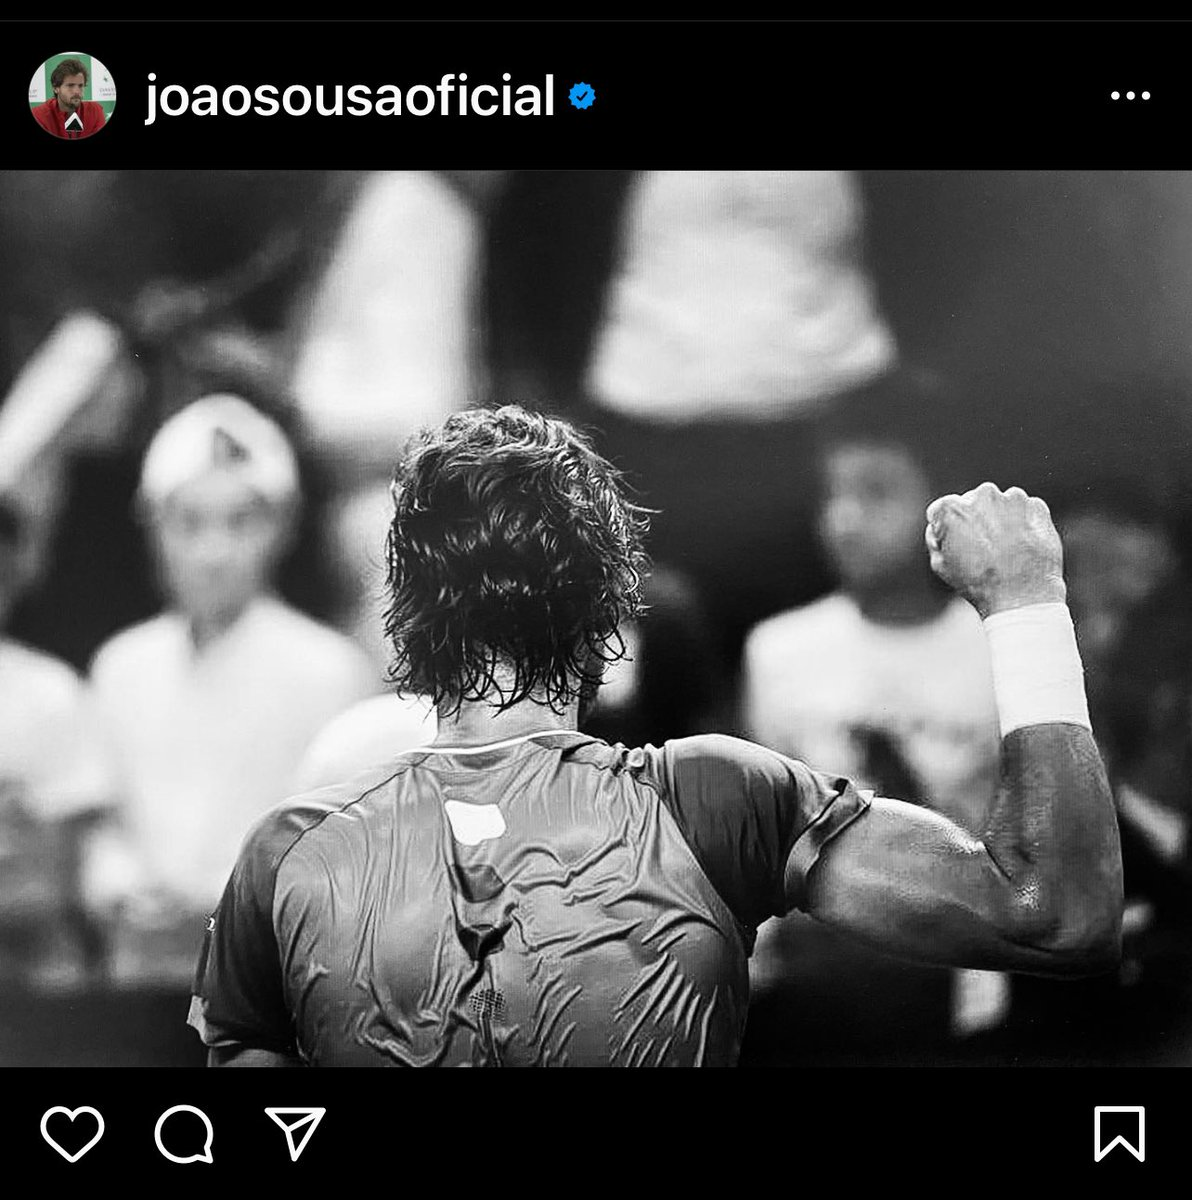 Get well soon @joaosousa30. We look forward to seeing you back in Melbourne in 2022 🎾